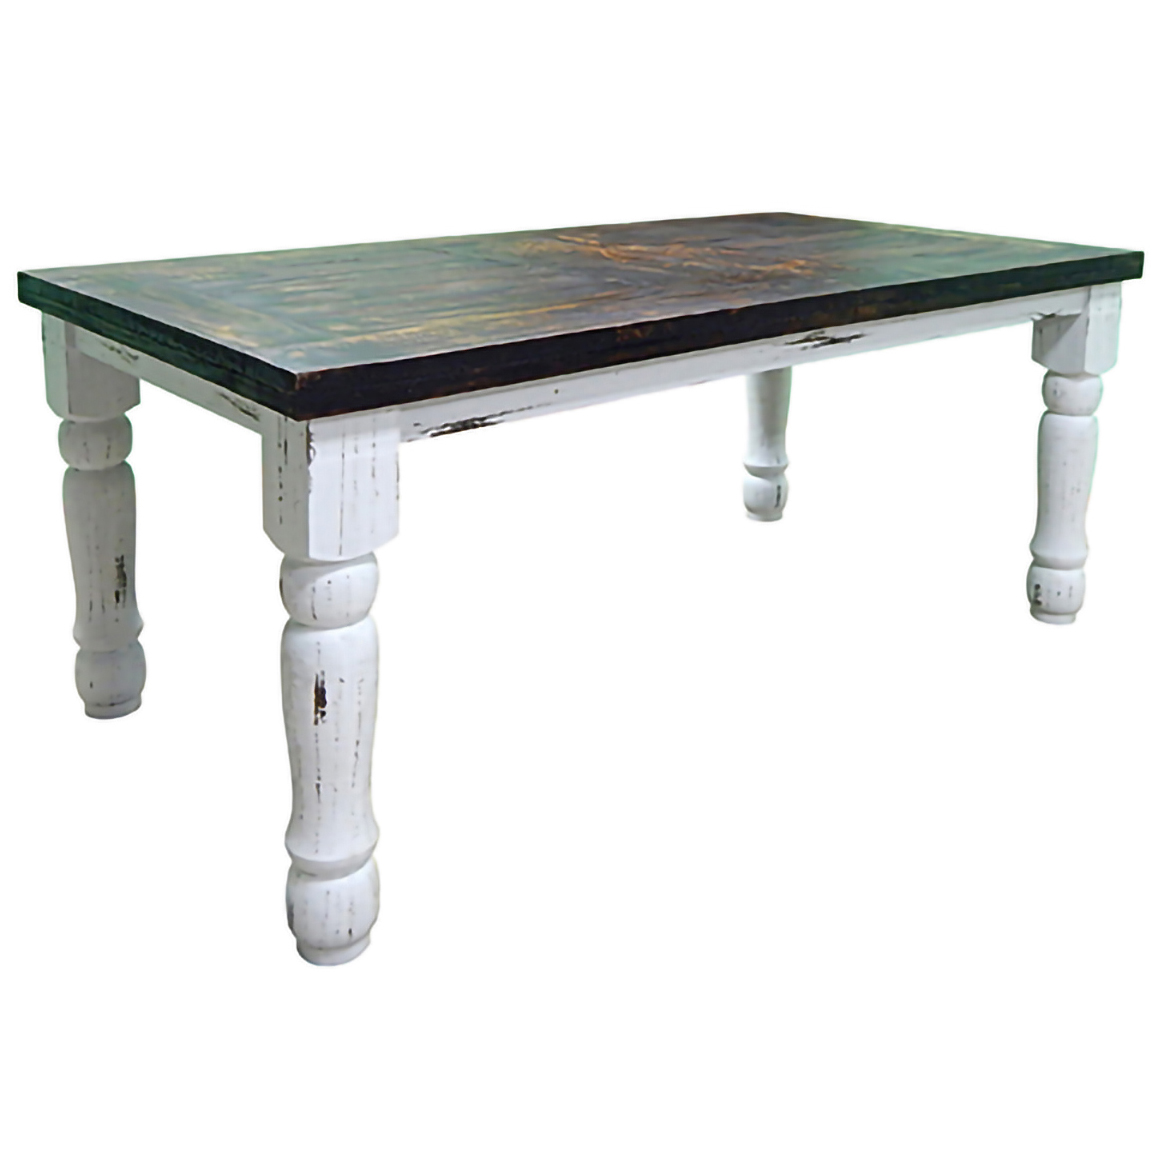 Montague 6 Ft Dining Table - White